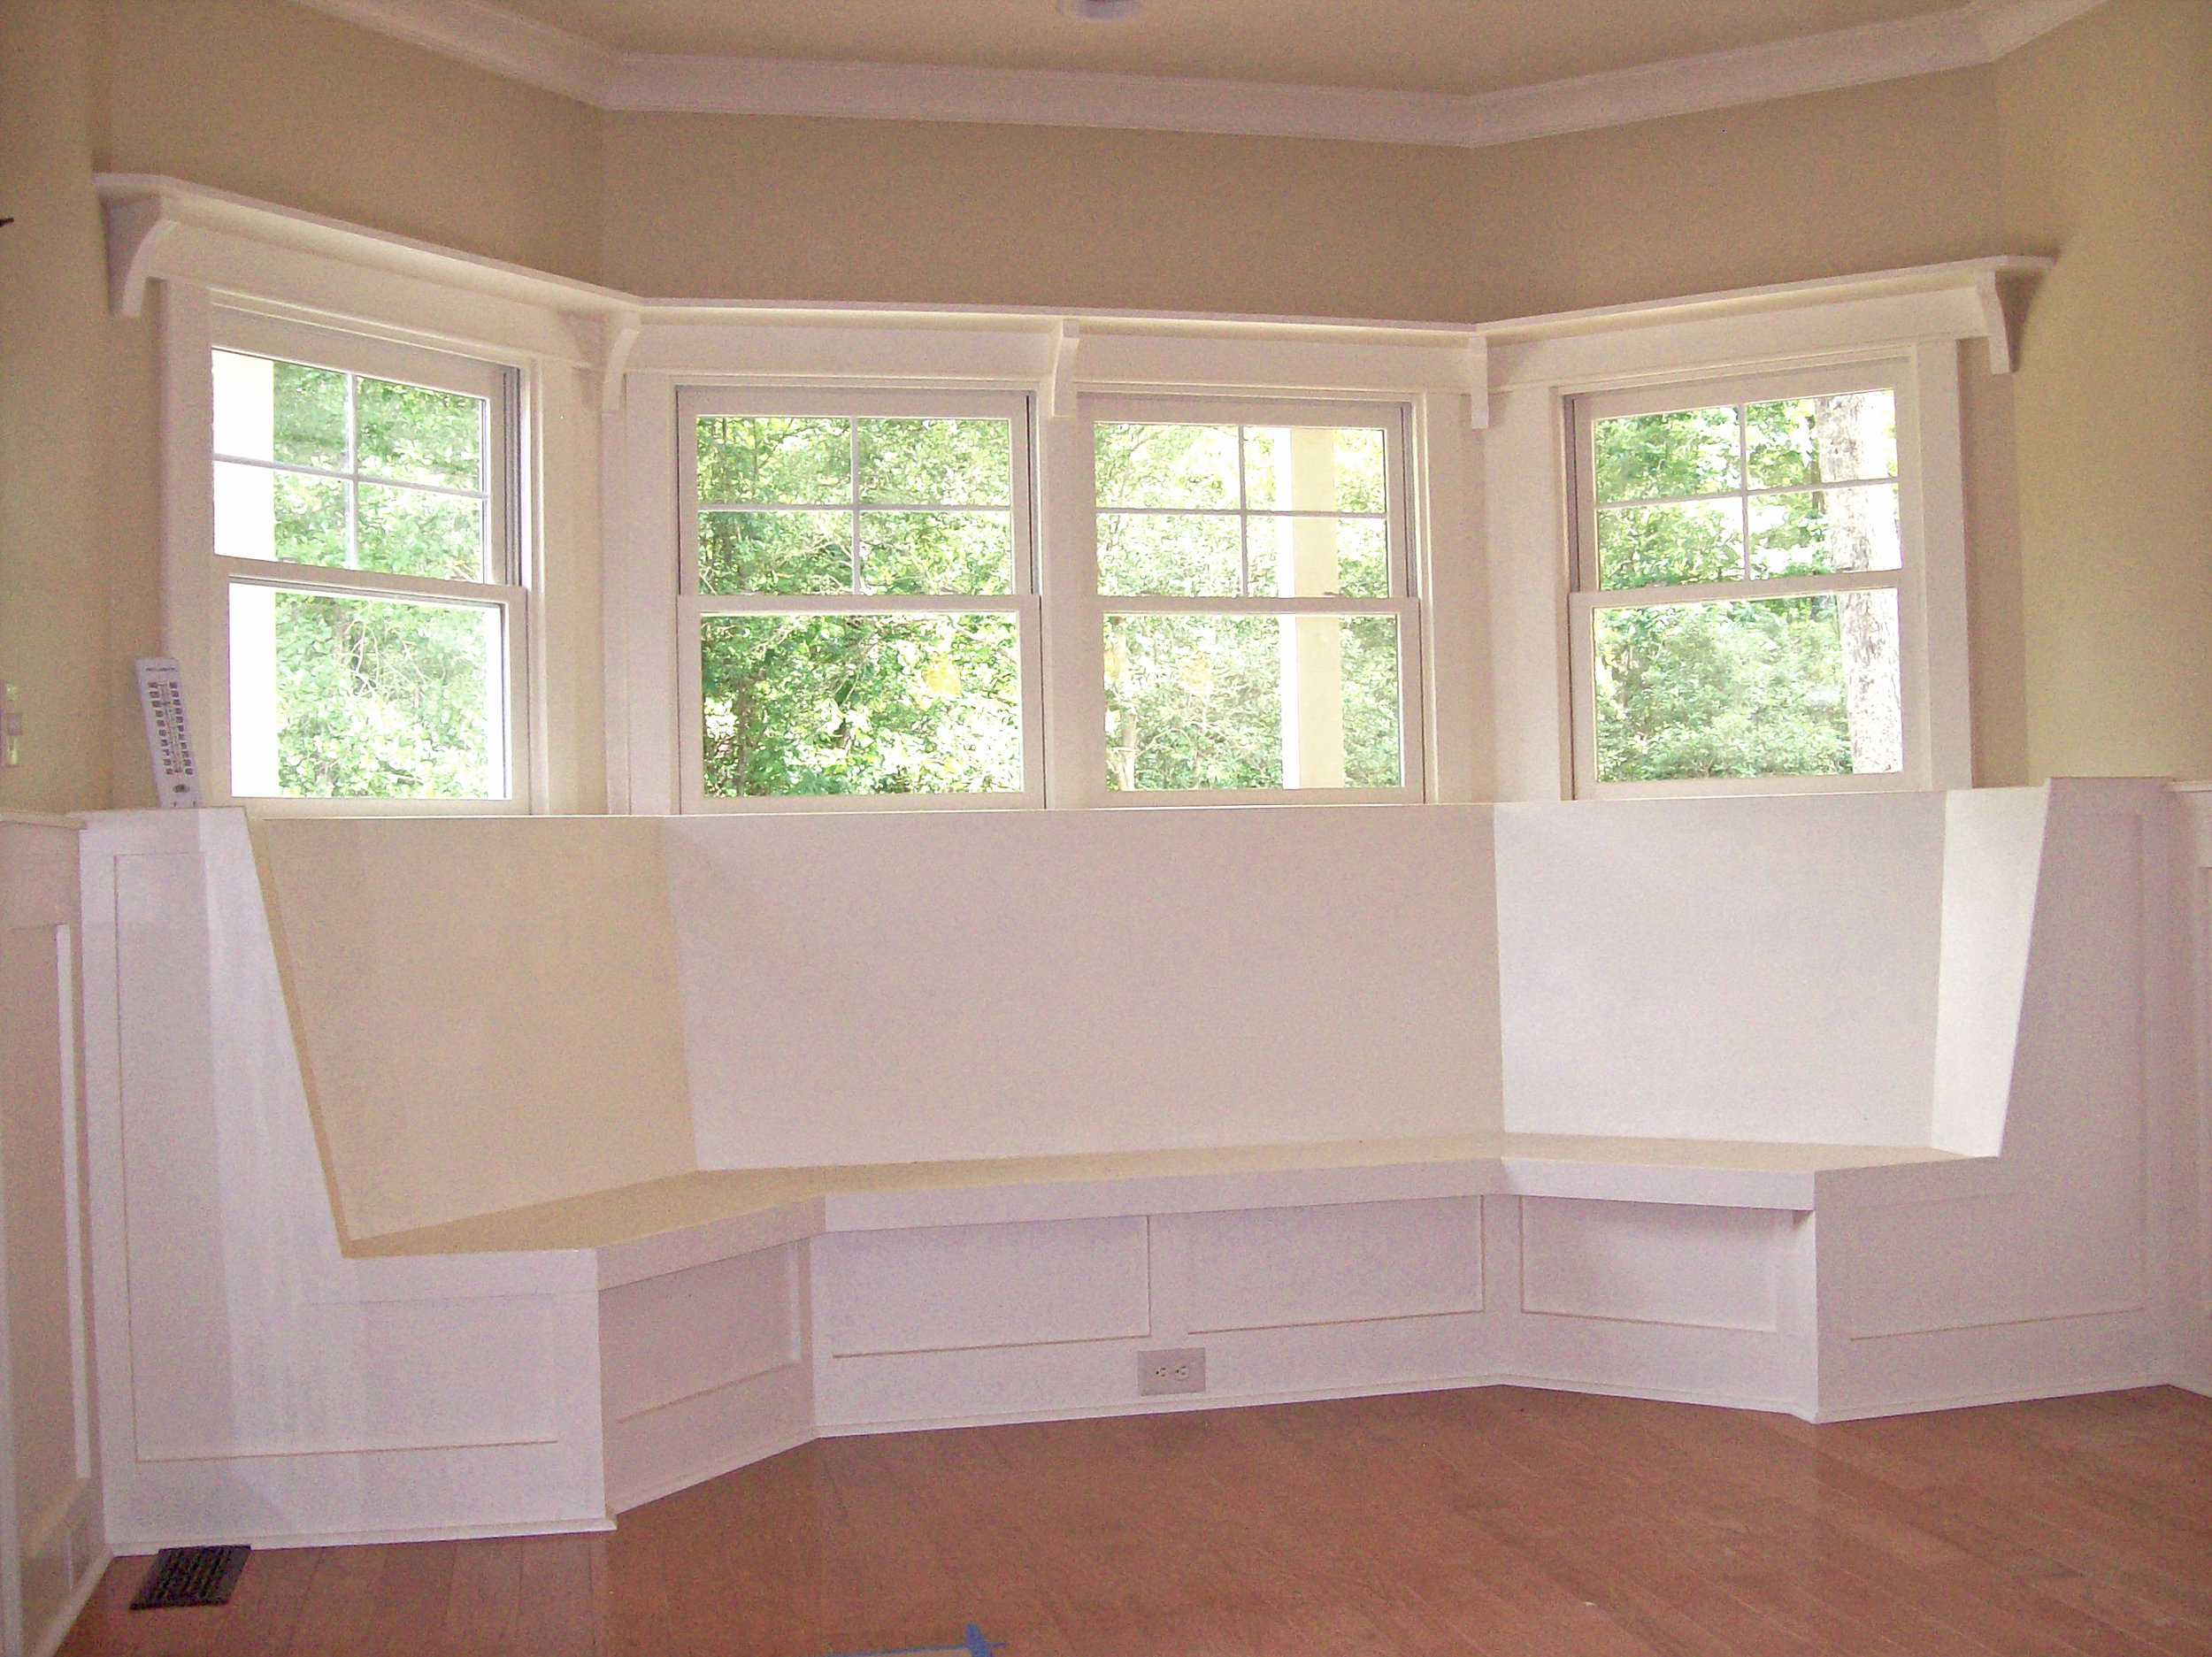 Dining Bay Window Banquette with Recessed Panel Detail & High Smooth Backer